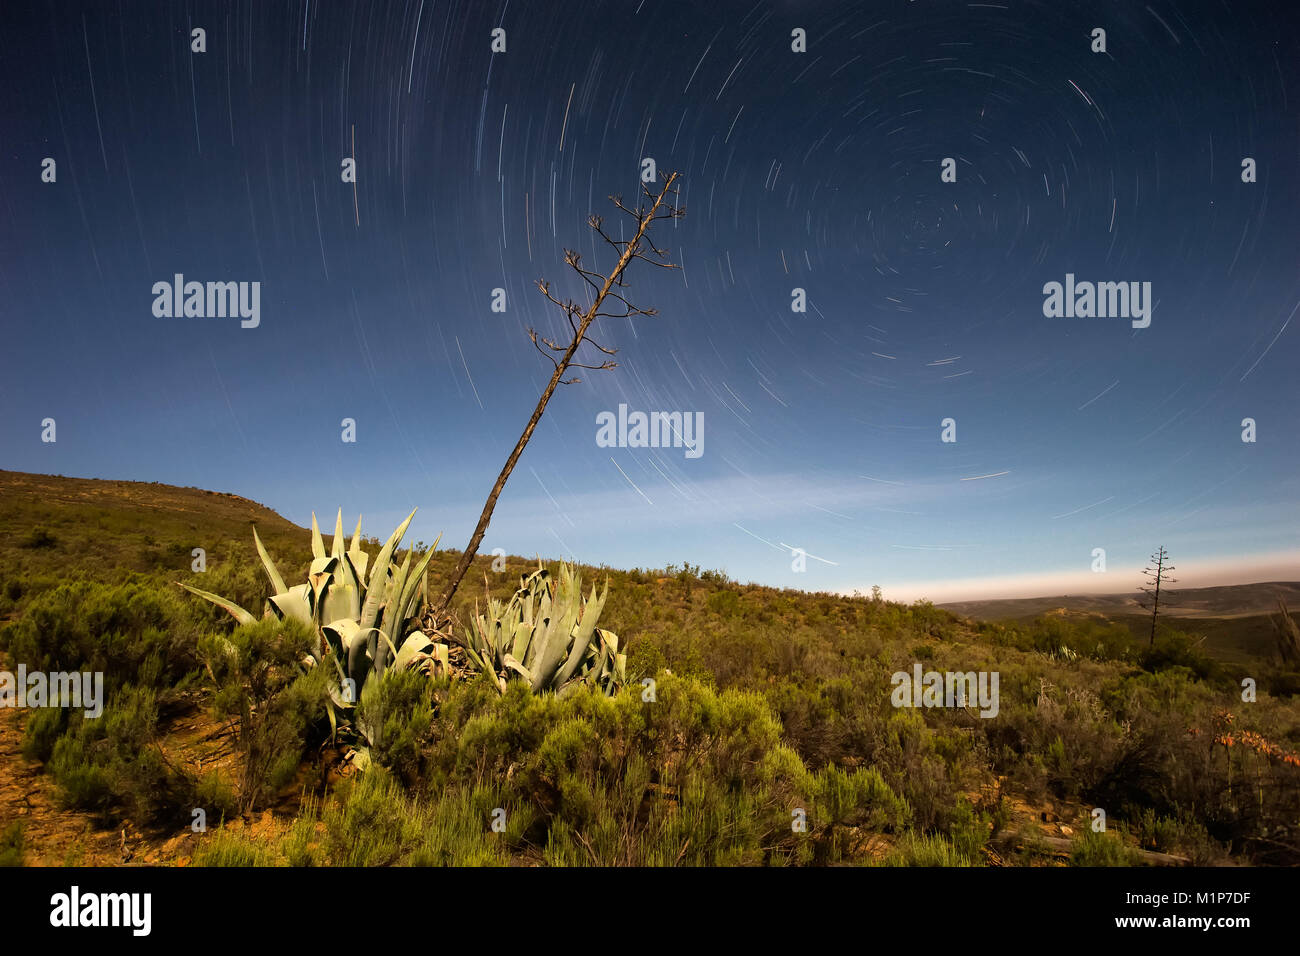 Beautiful star trail landscape image from the little Karoo region close to Uniondale in the Garden Route of South - Stock Image